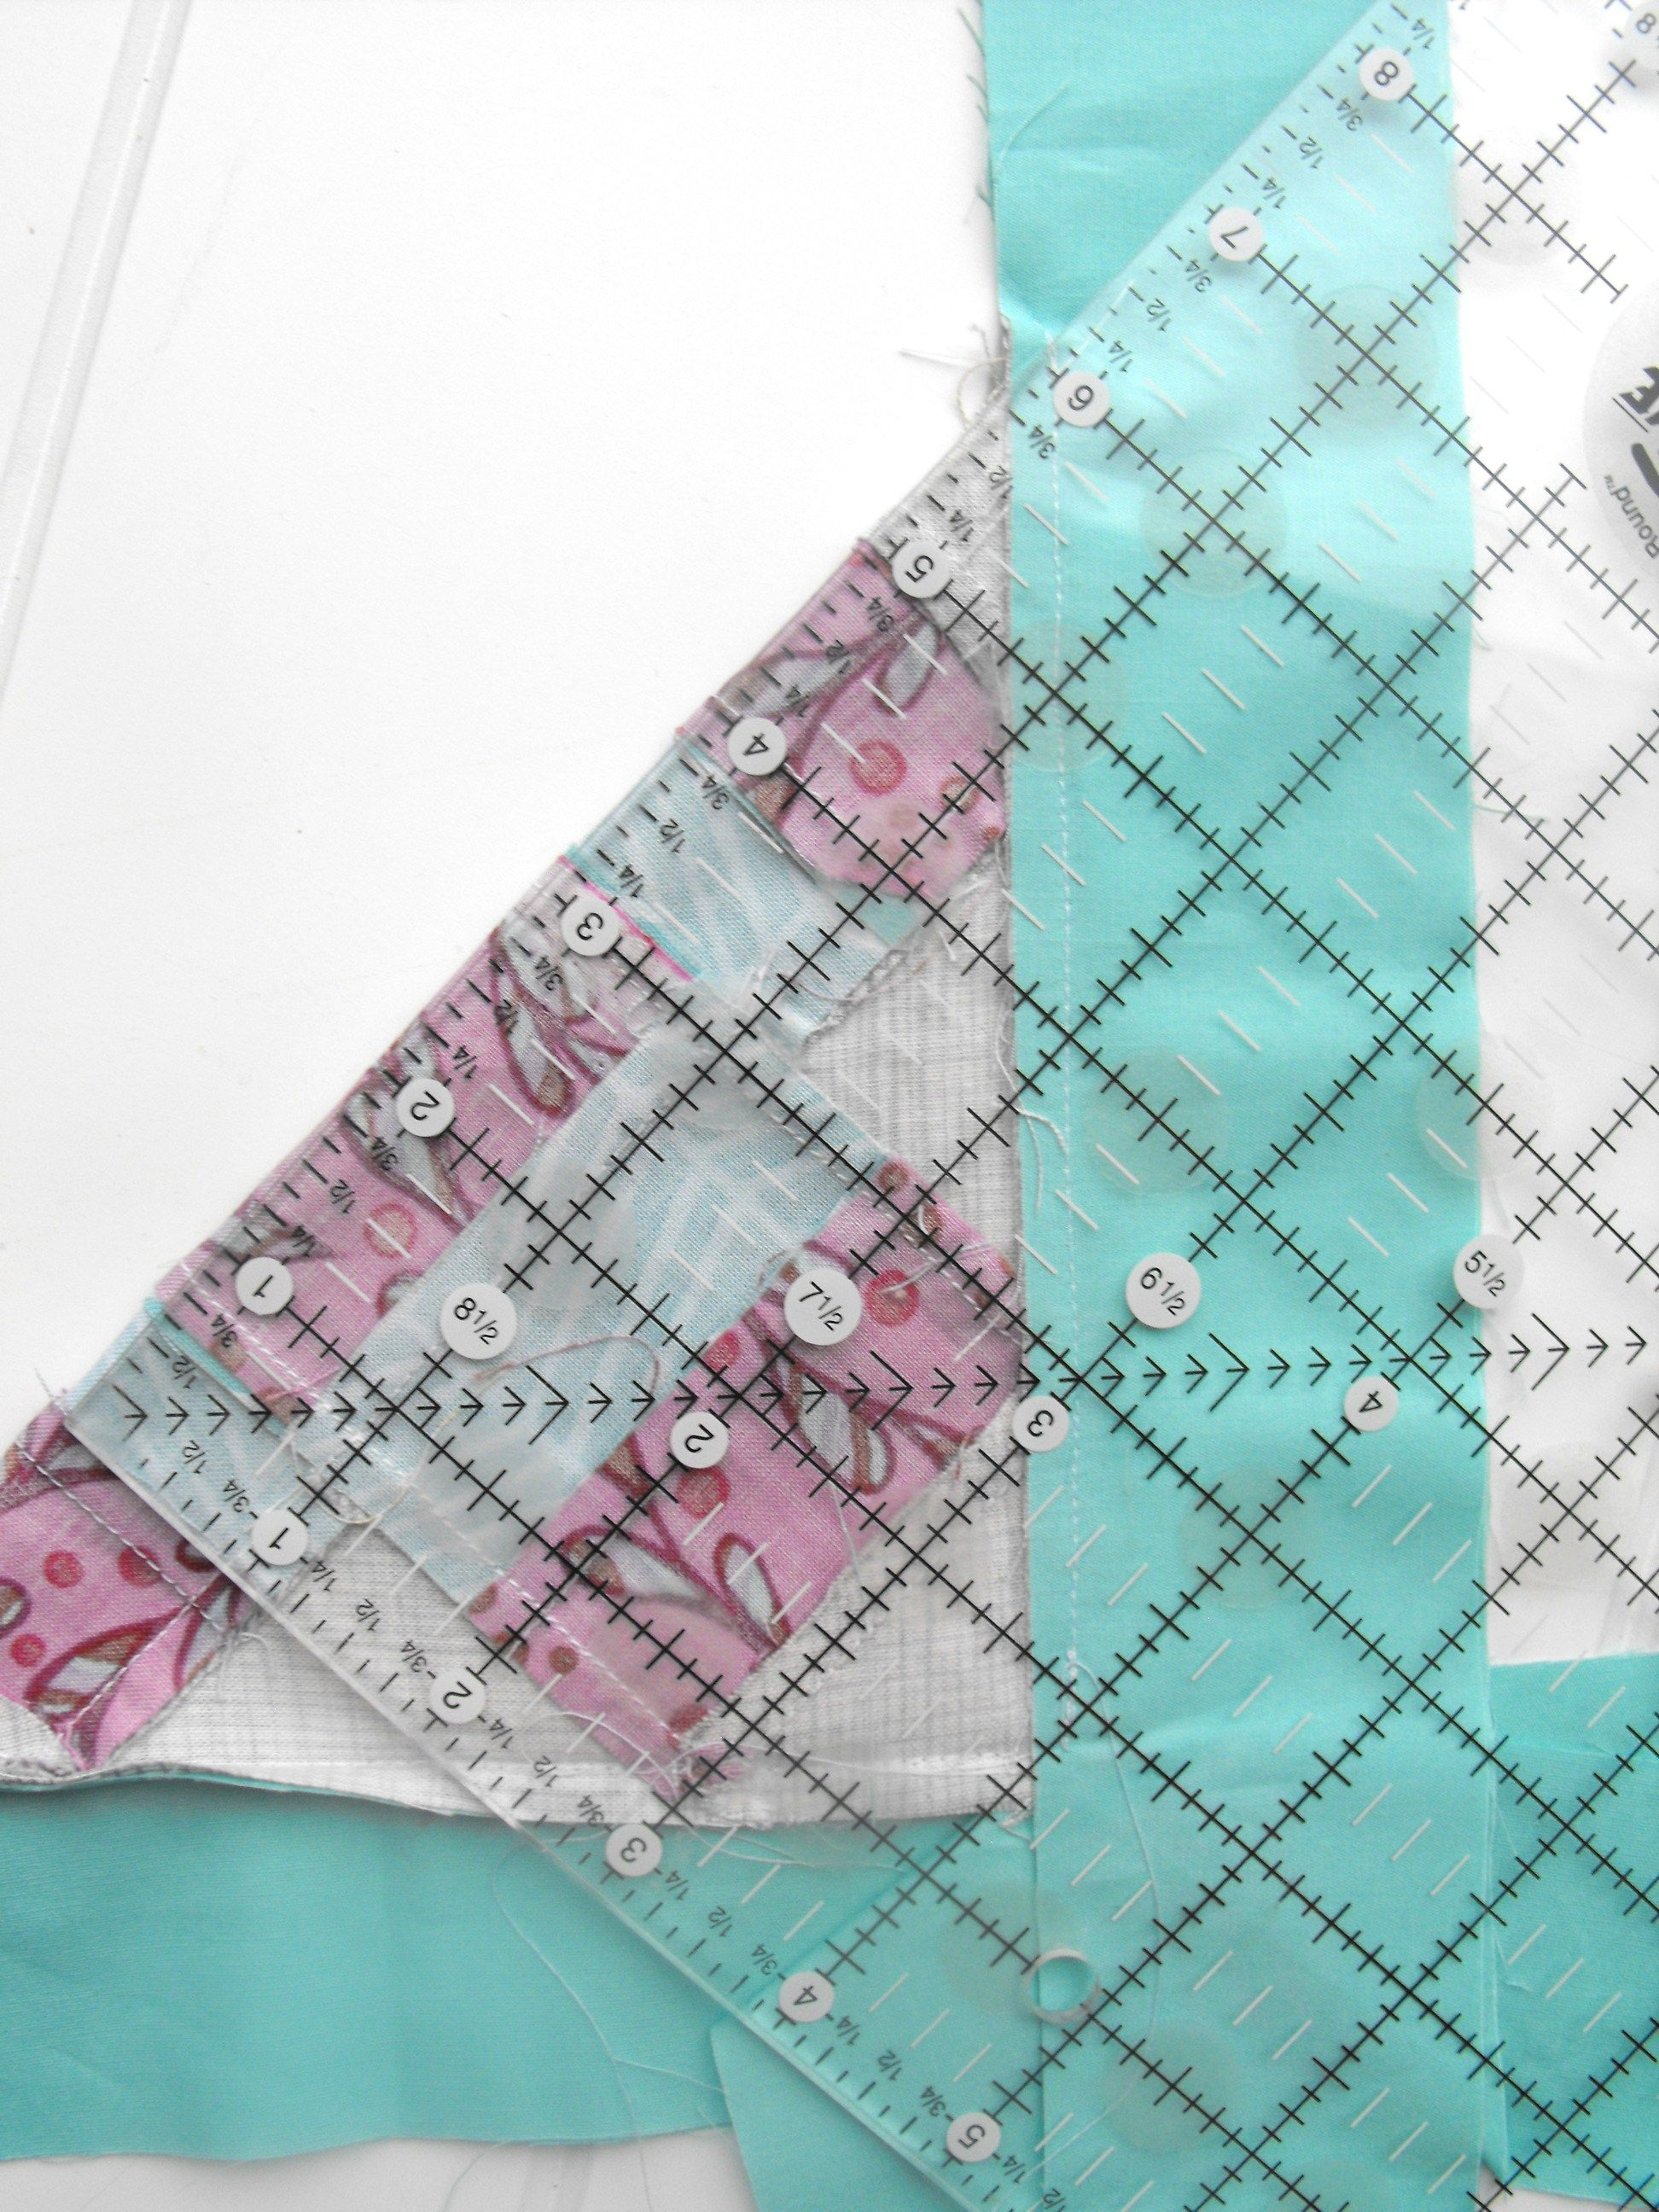 Mitered Corners on Quilt Borders: Sewing Tutorial   Quilt border ... : mitered quilt binding - Adamdwight.com